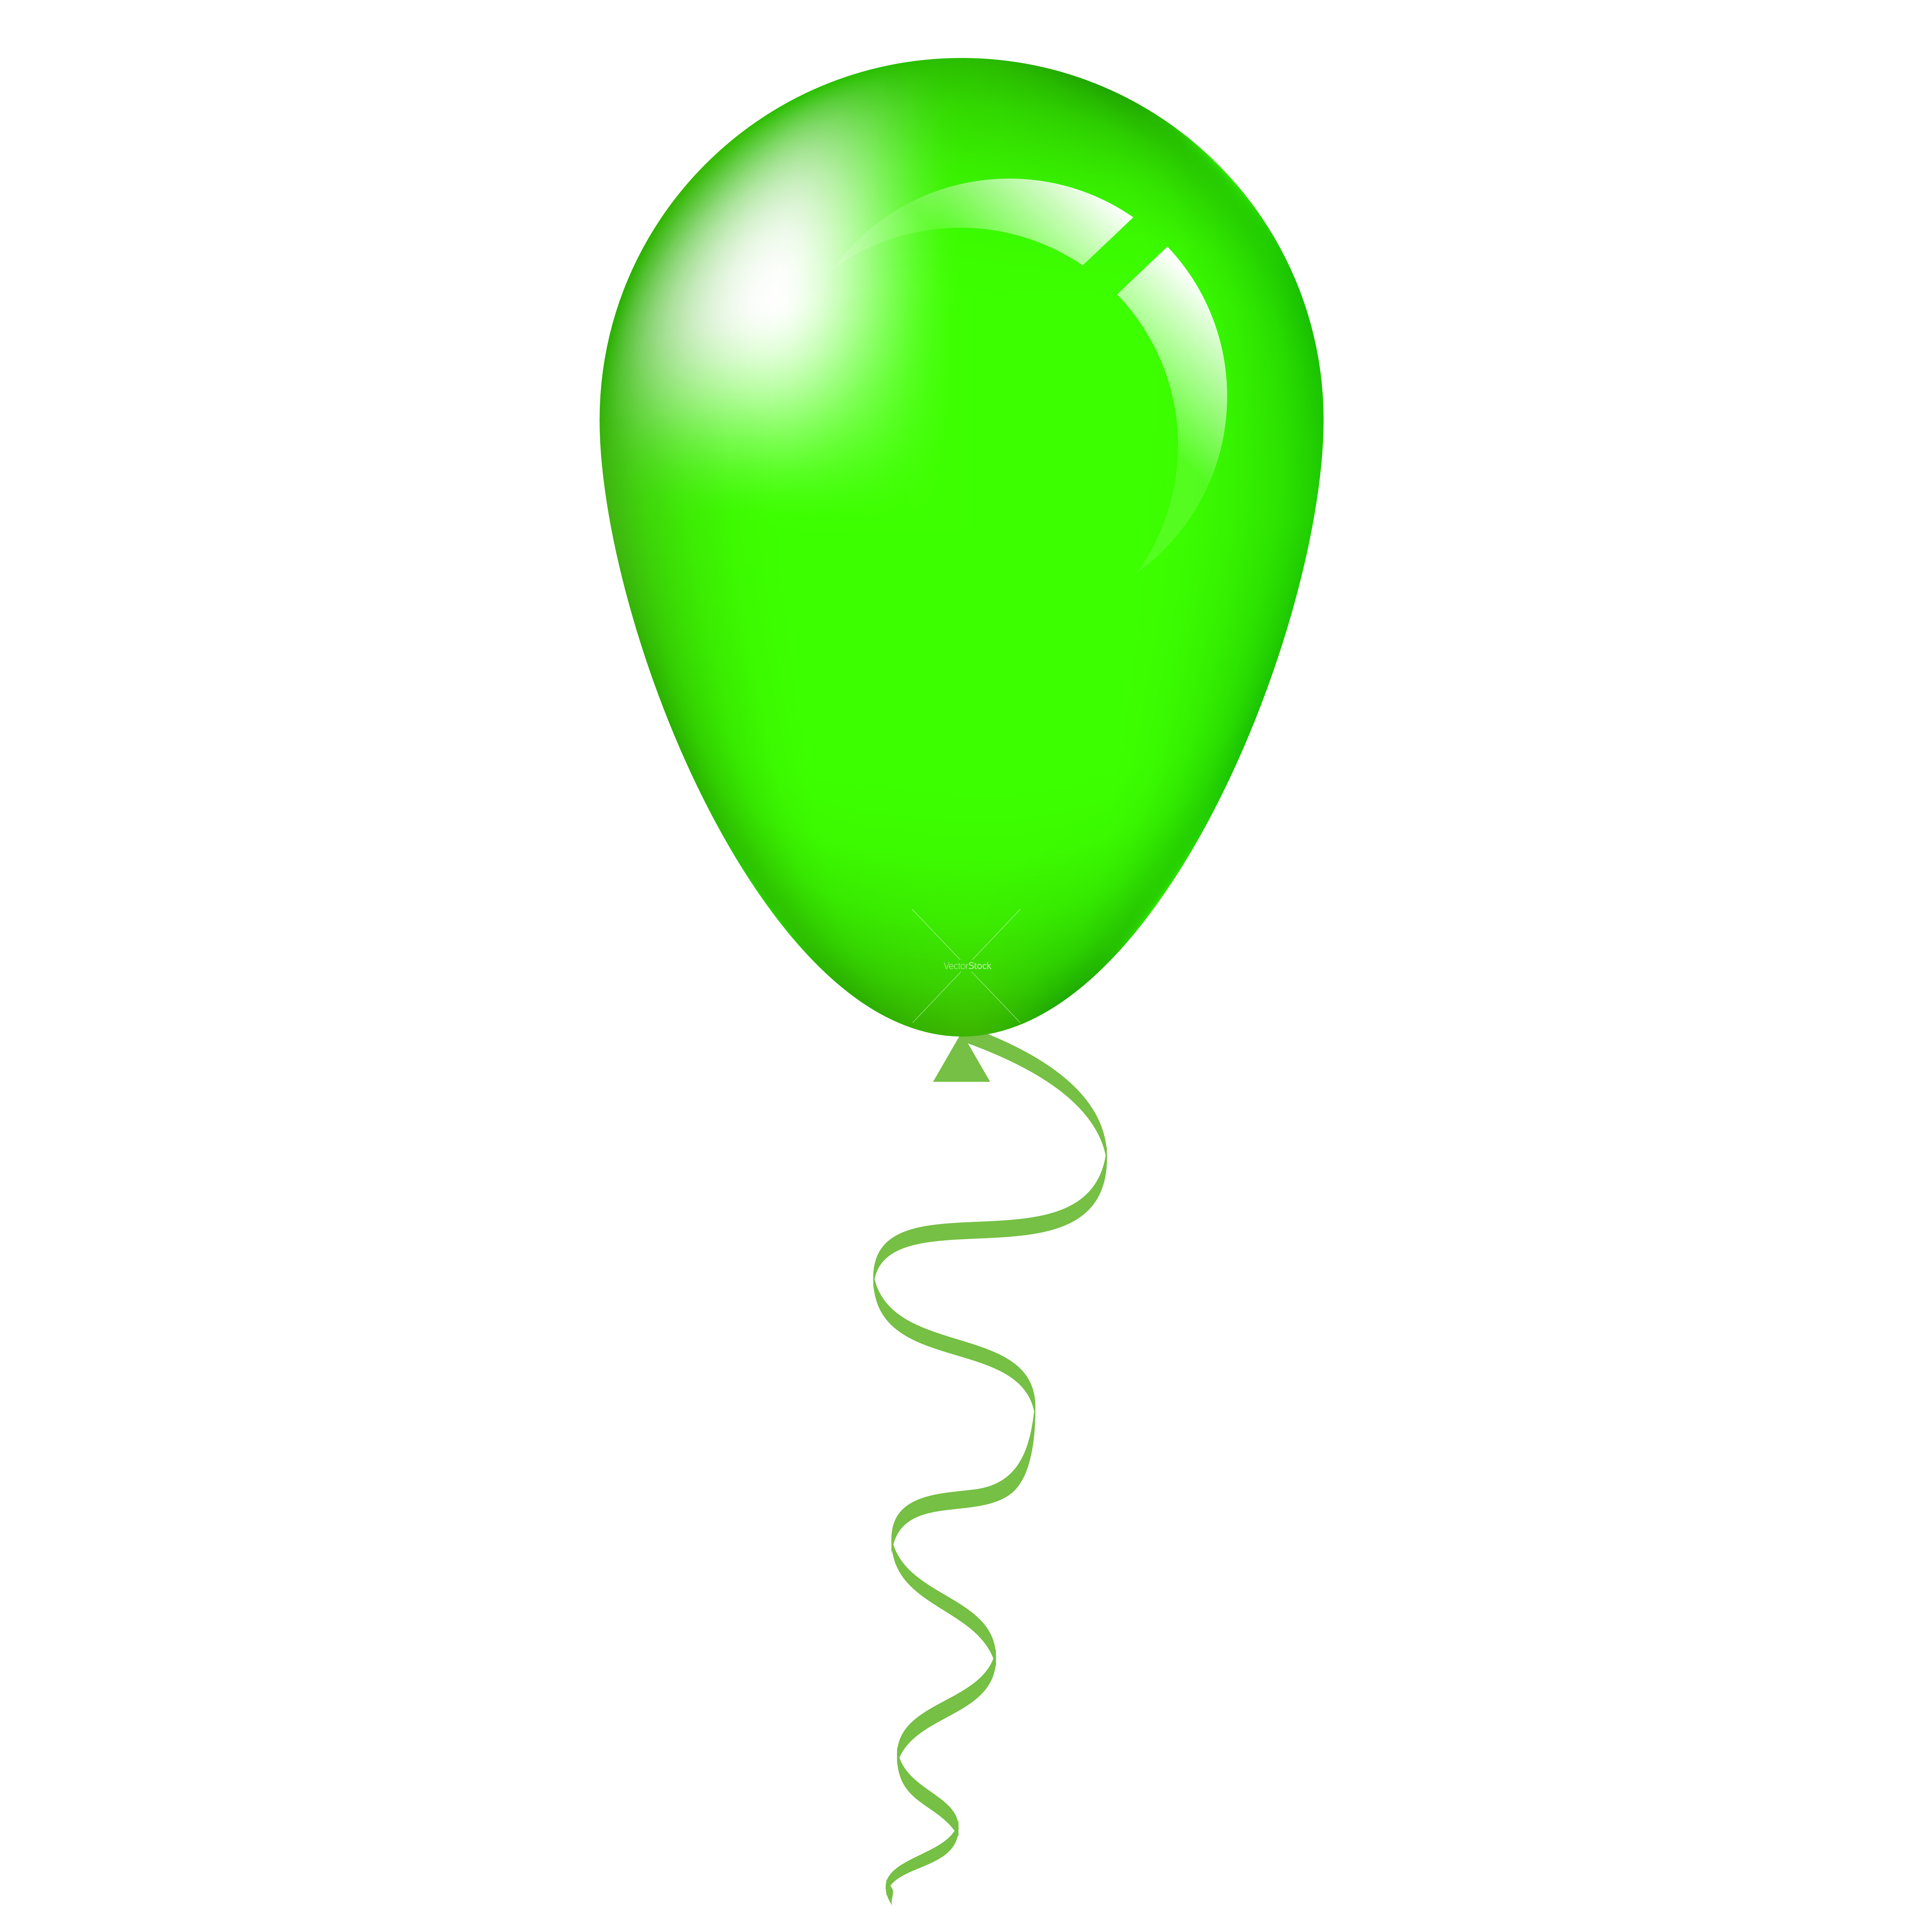 Green Balloon Clipart | Clipart Panda - Free Clipart Images